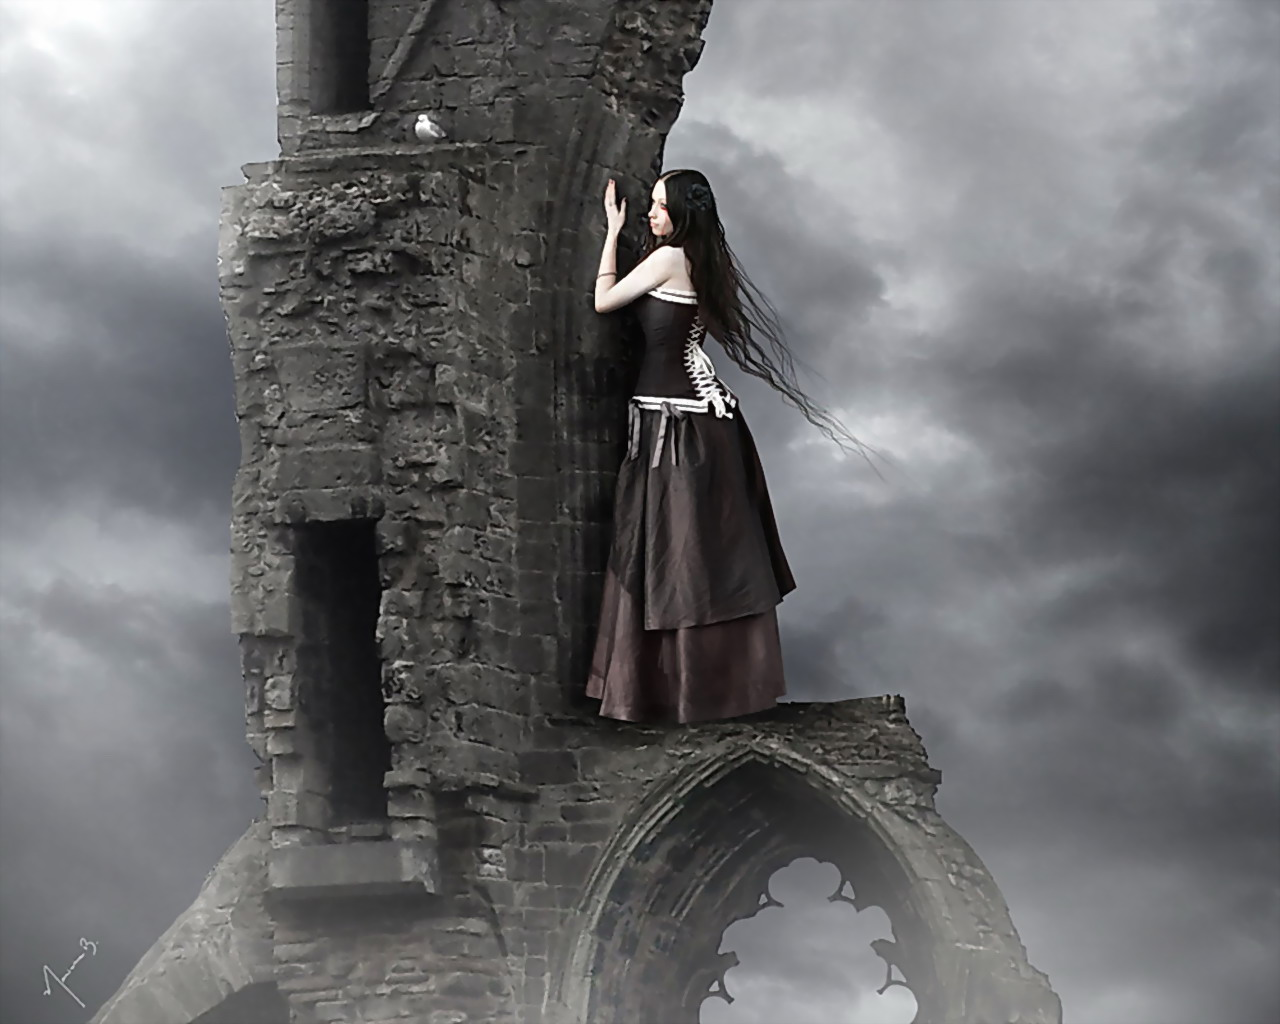 Gothic Wallpapers Tags Gothic Wallpaper HD Walls Find Wallpapers 1280x1024